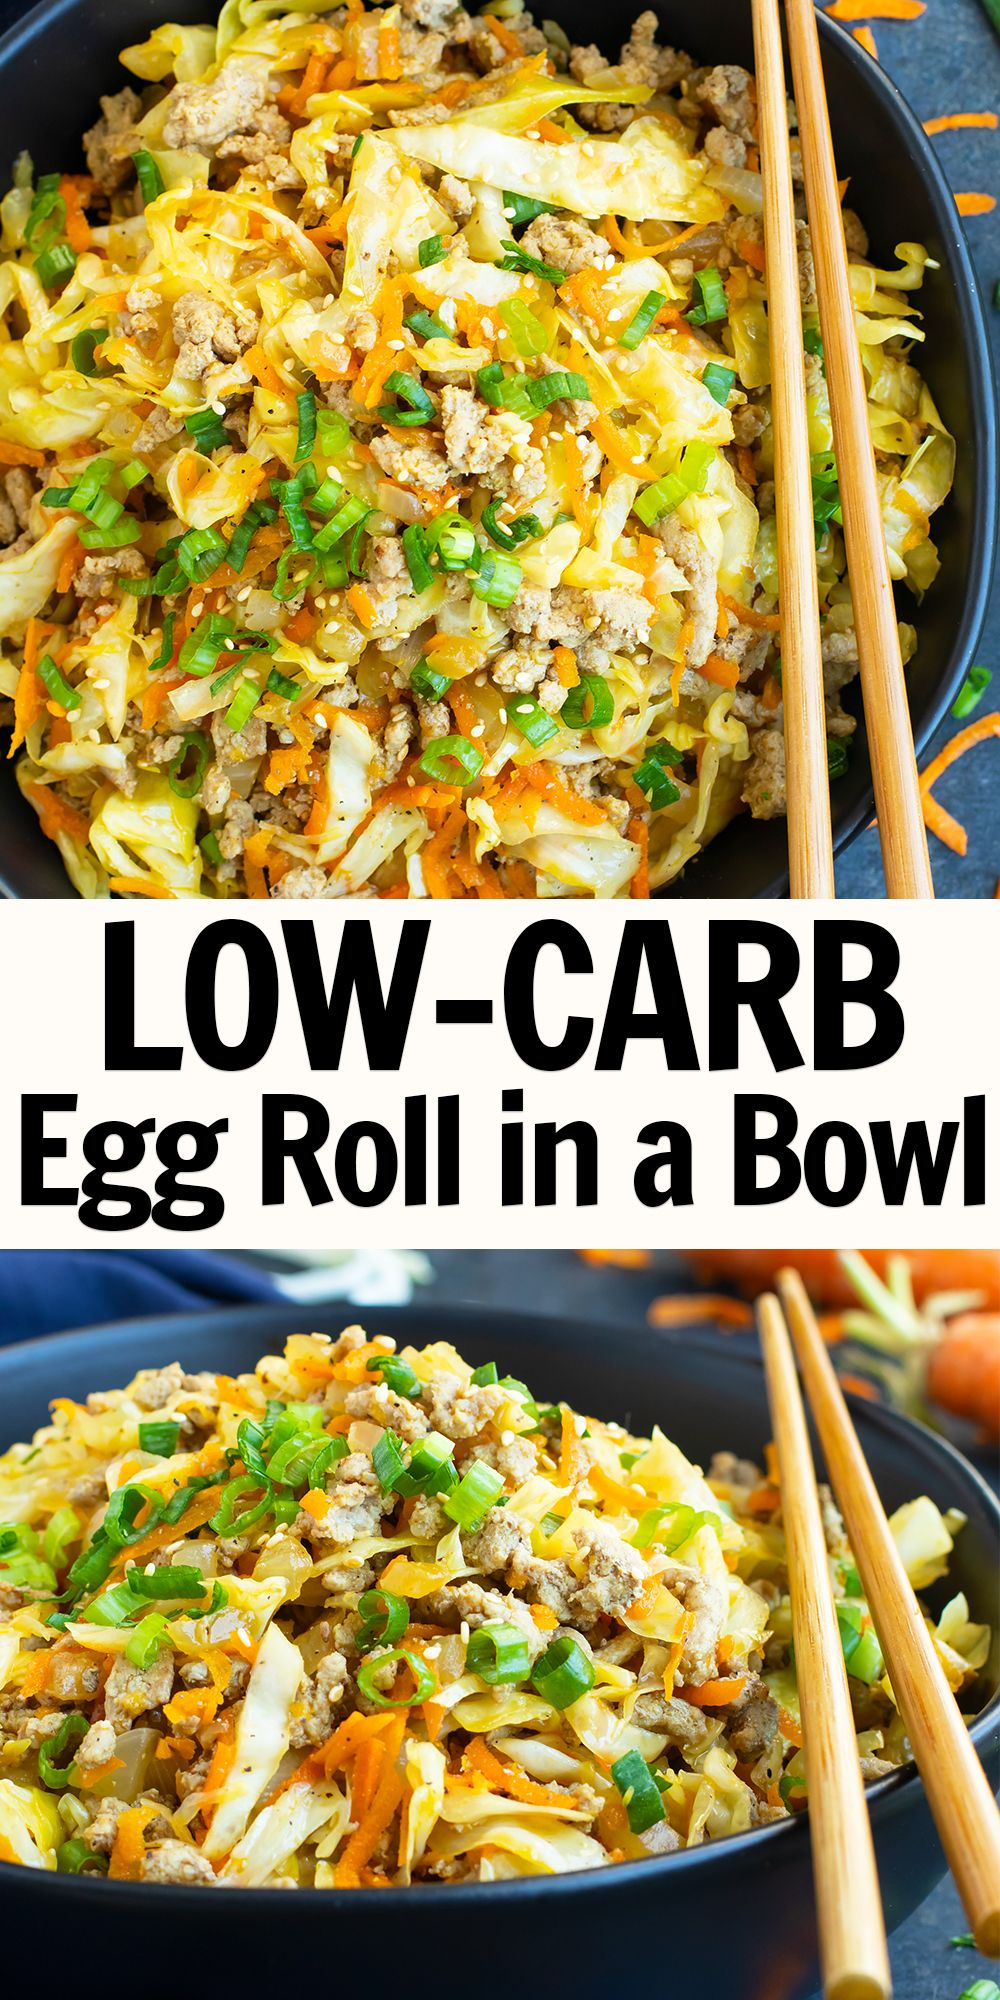 Photo of Egg Roll in a Bowl | Low-Carb